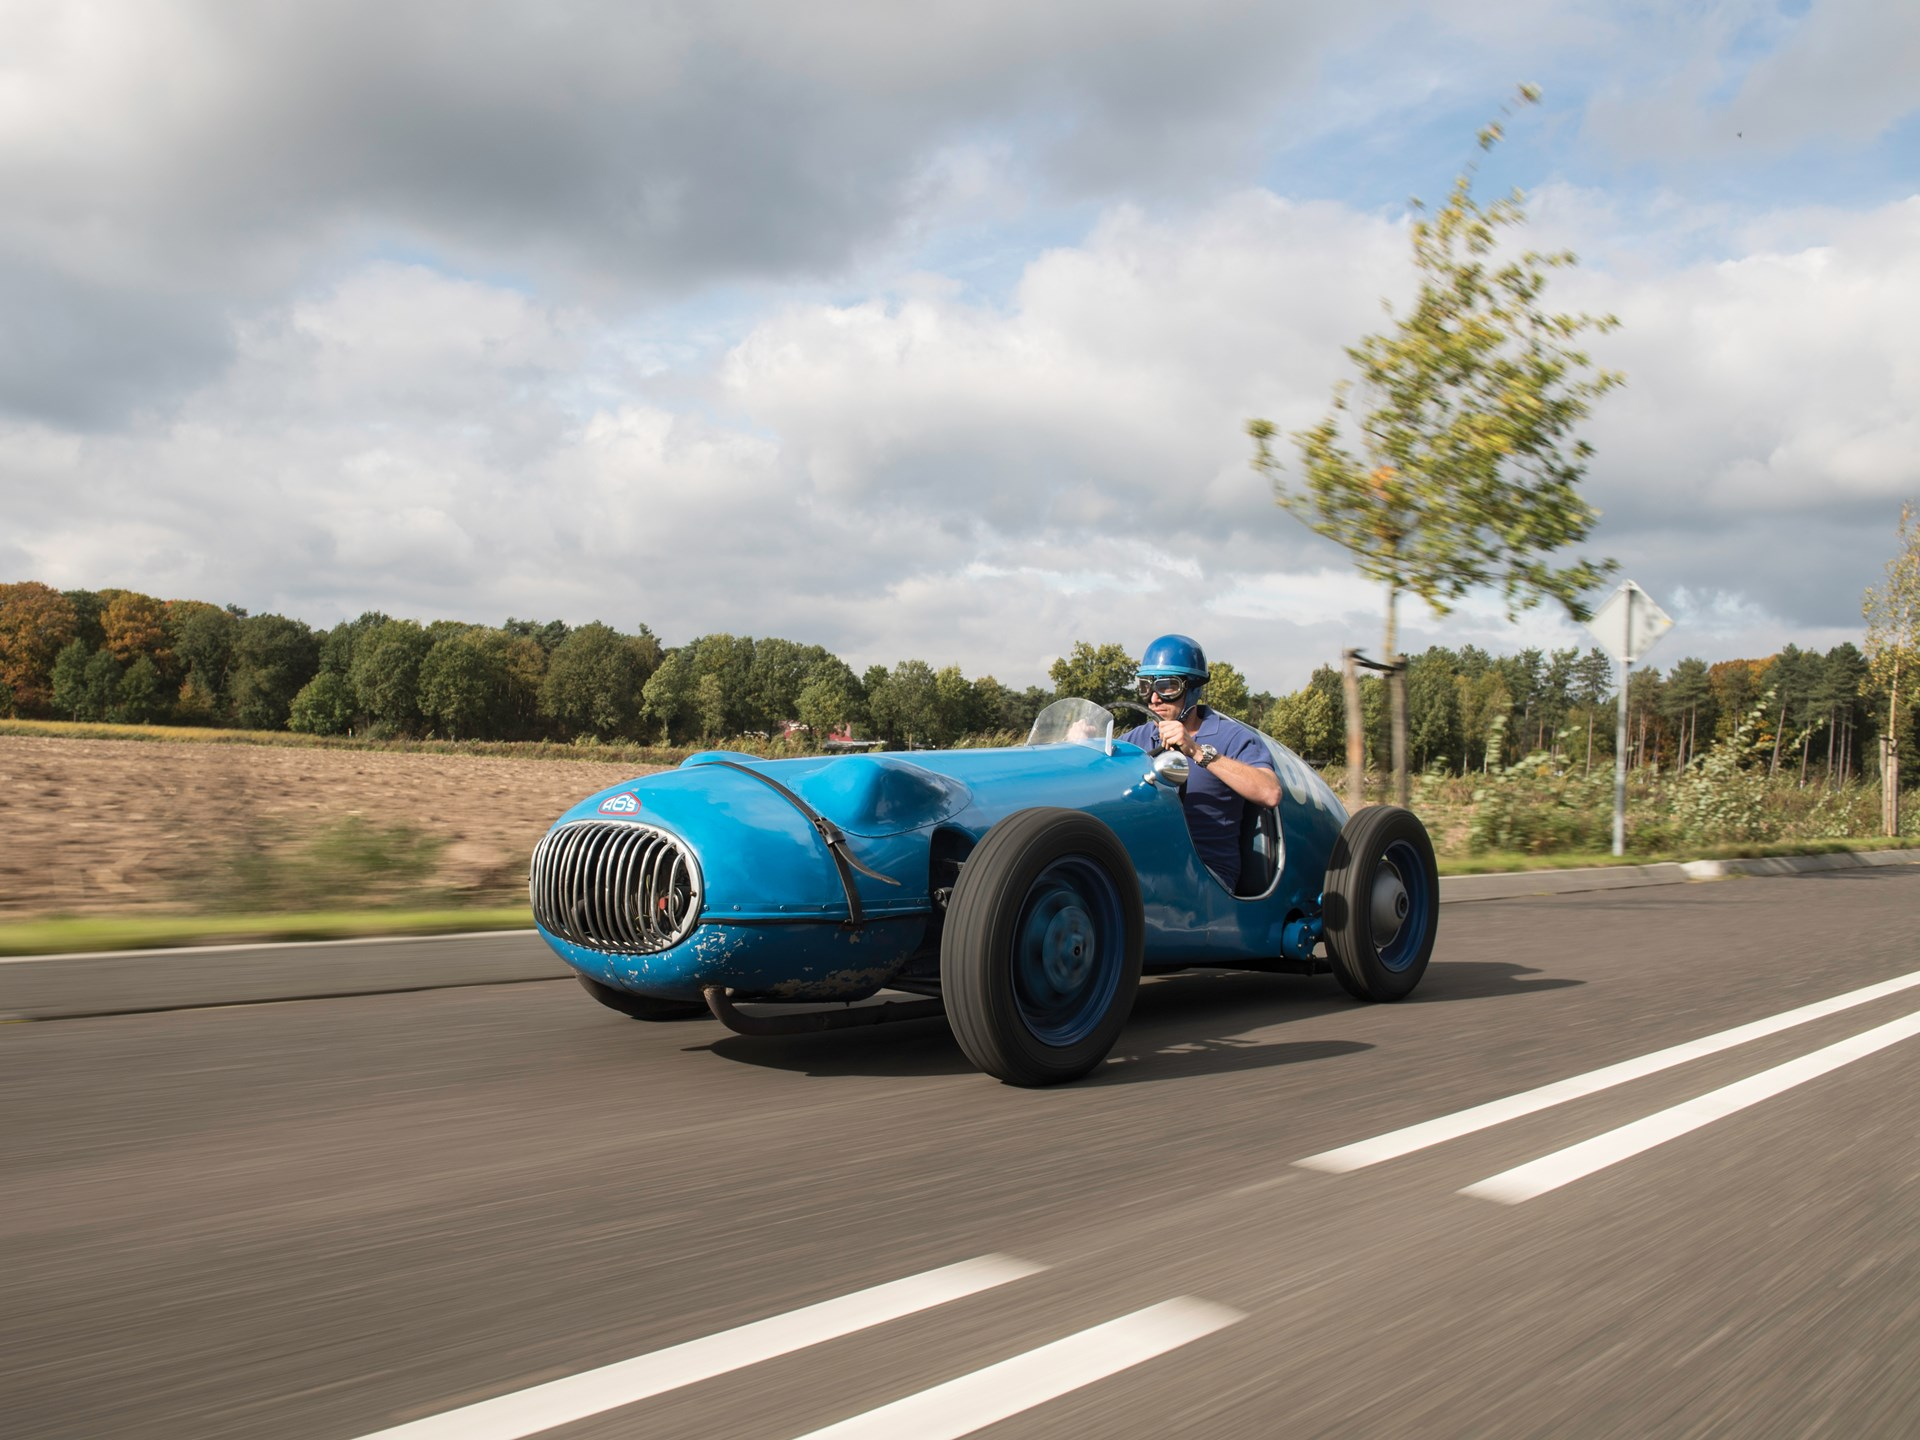 1950 AGS Panhard Monomill